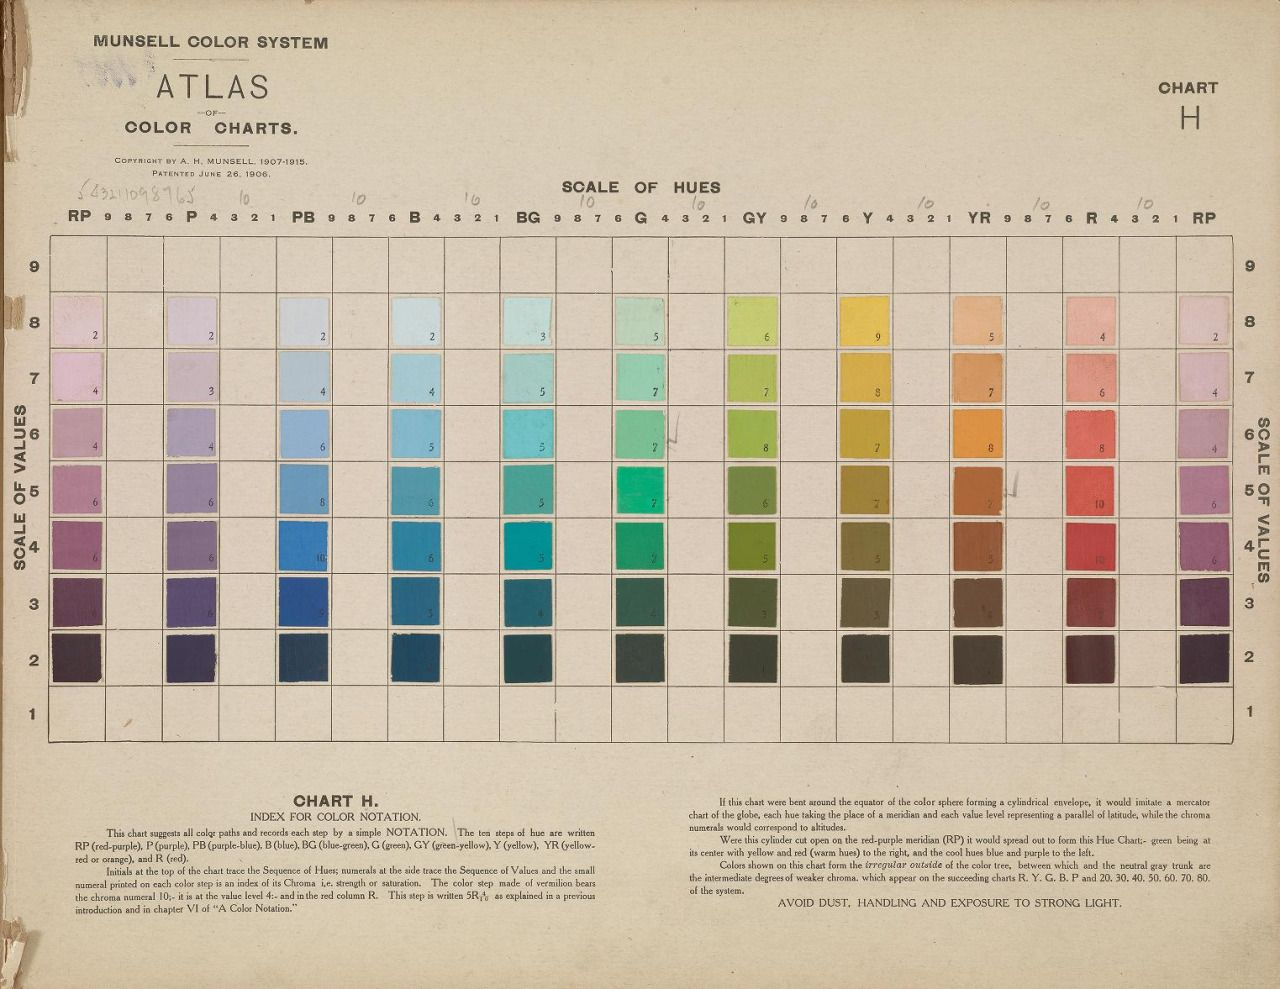 the munsell color system was developed by art professor albert munsell as a way to chart